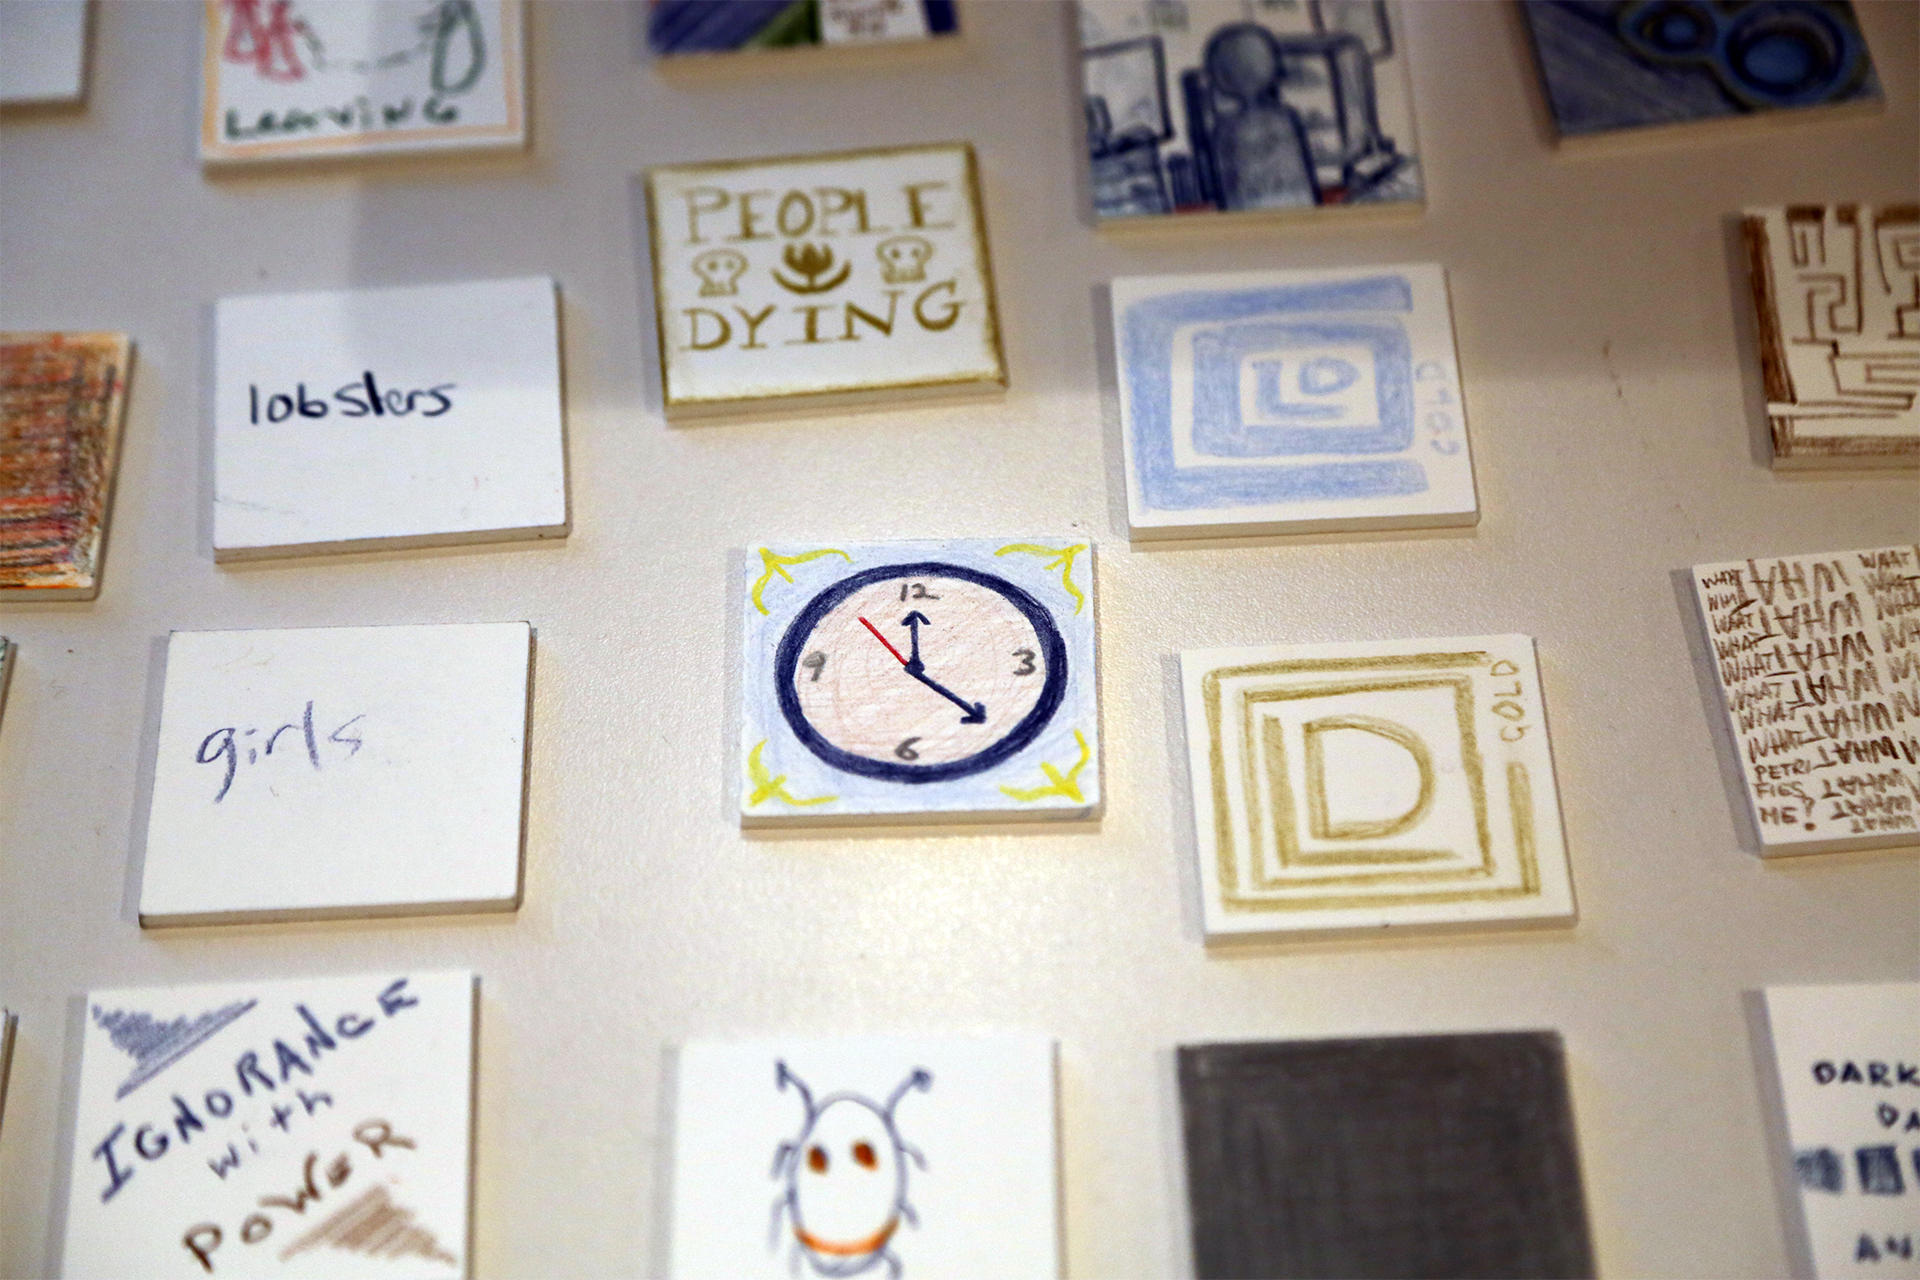 Mosaic tile drawings created by the public during Pietroiusti's workshop